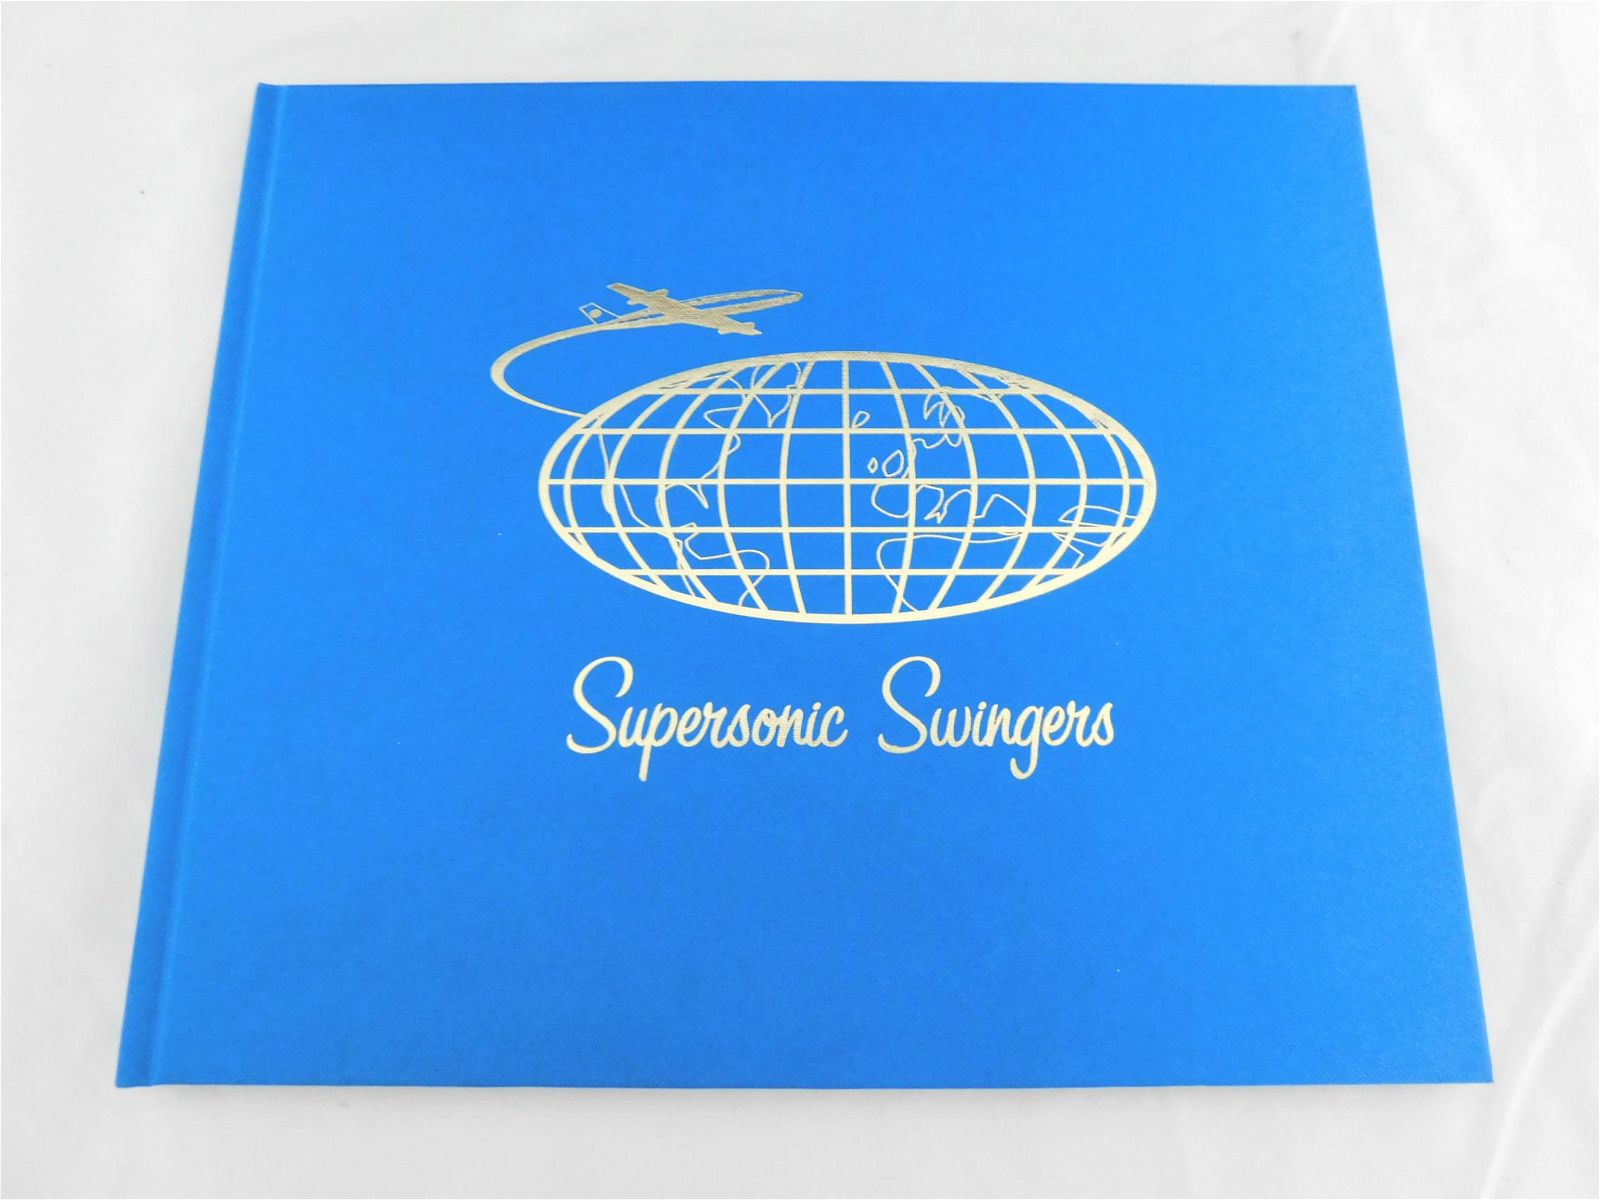 Supersonic Swingers New Works by Shag Ltd Ed